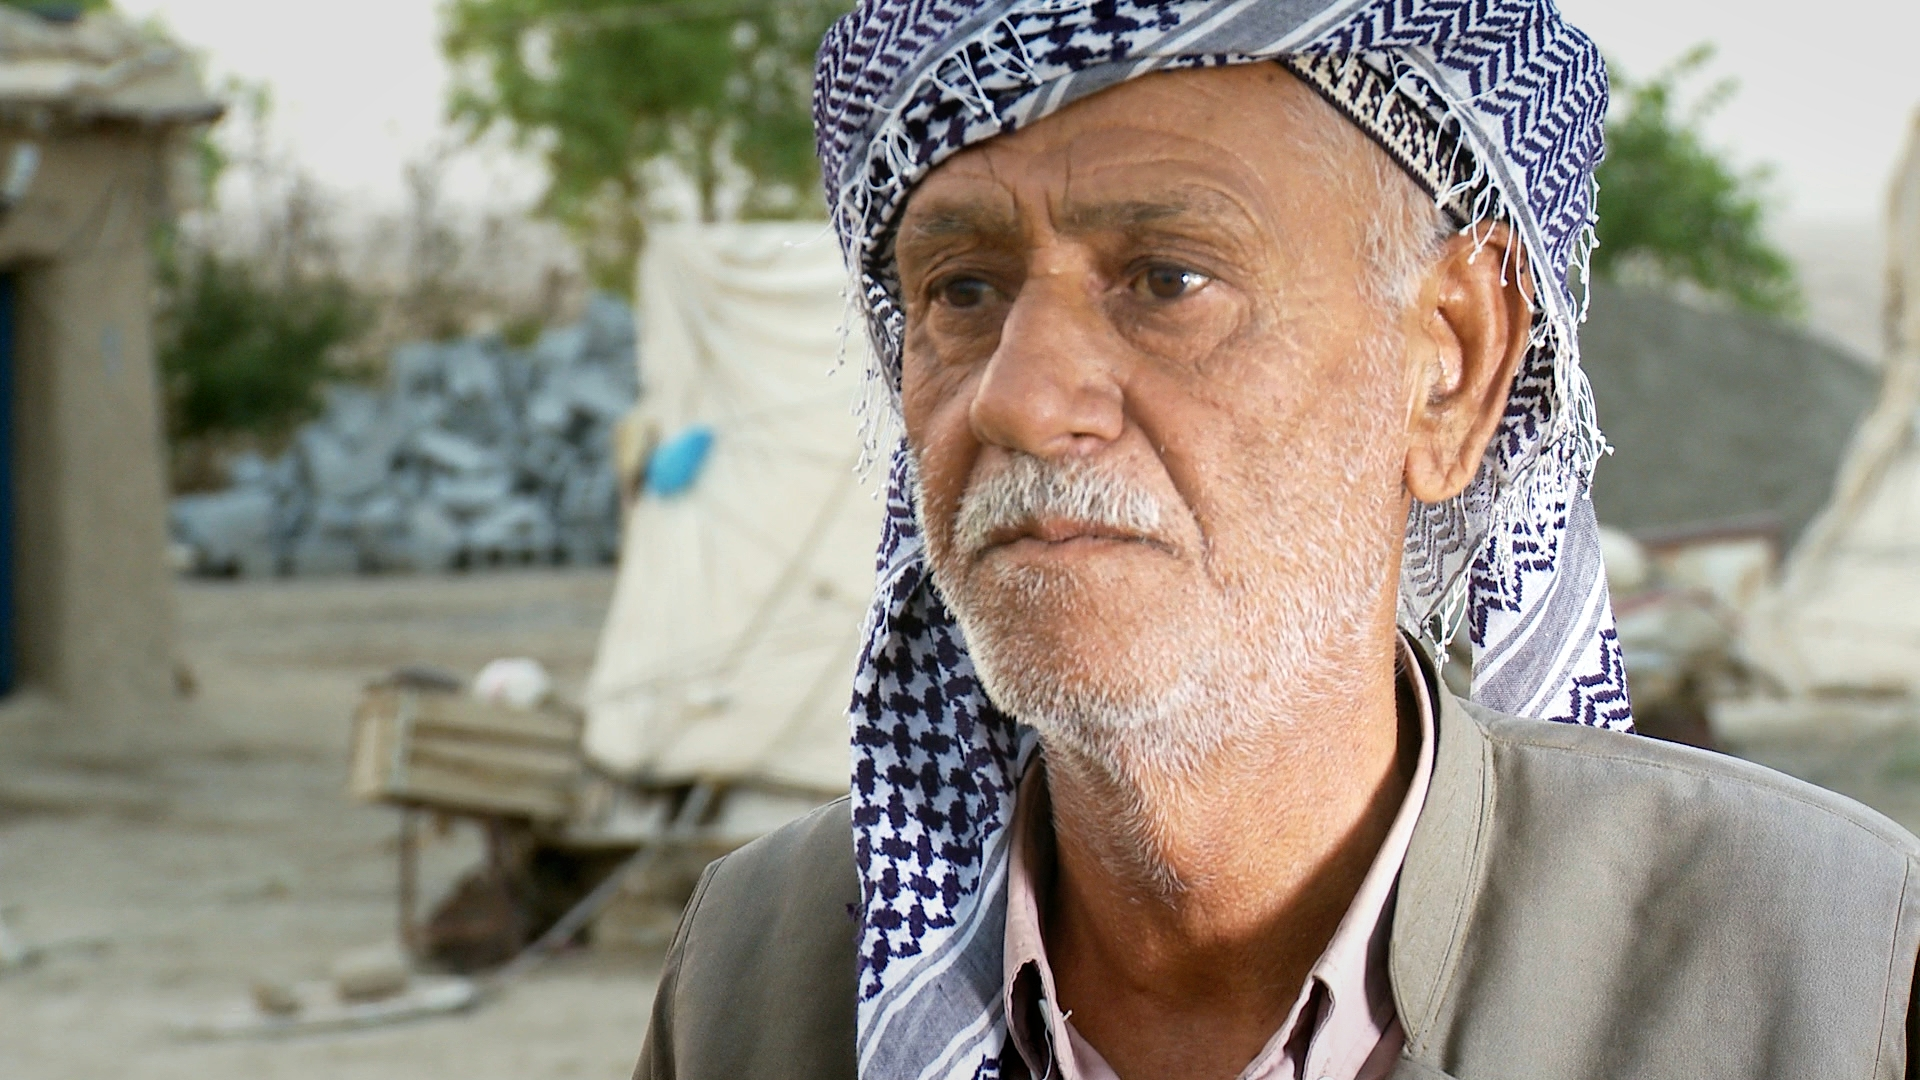 SADOUN REZA MAHMOUD's father, grandfather and ancestors had farmed in Chalistan in the Kirkuk region. However, in 1963 his family were driven from their lands by Arab fighters from the National Guard, who were acting on orders from the Ba'ath regime. Sadoun returned in 2003, but without their inheritance his family are forced to live in tents and fear eviction.